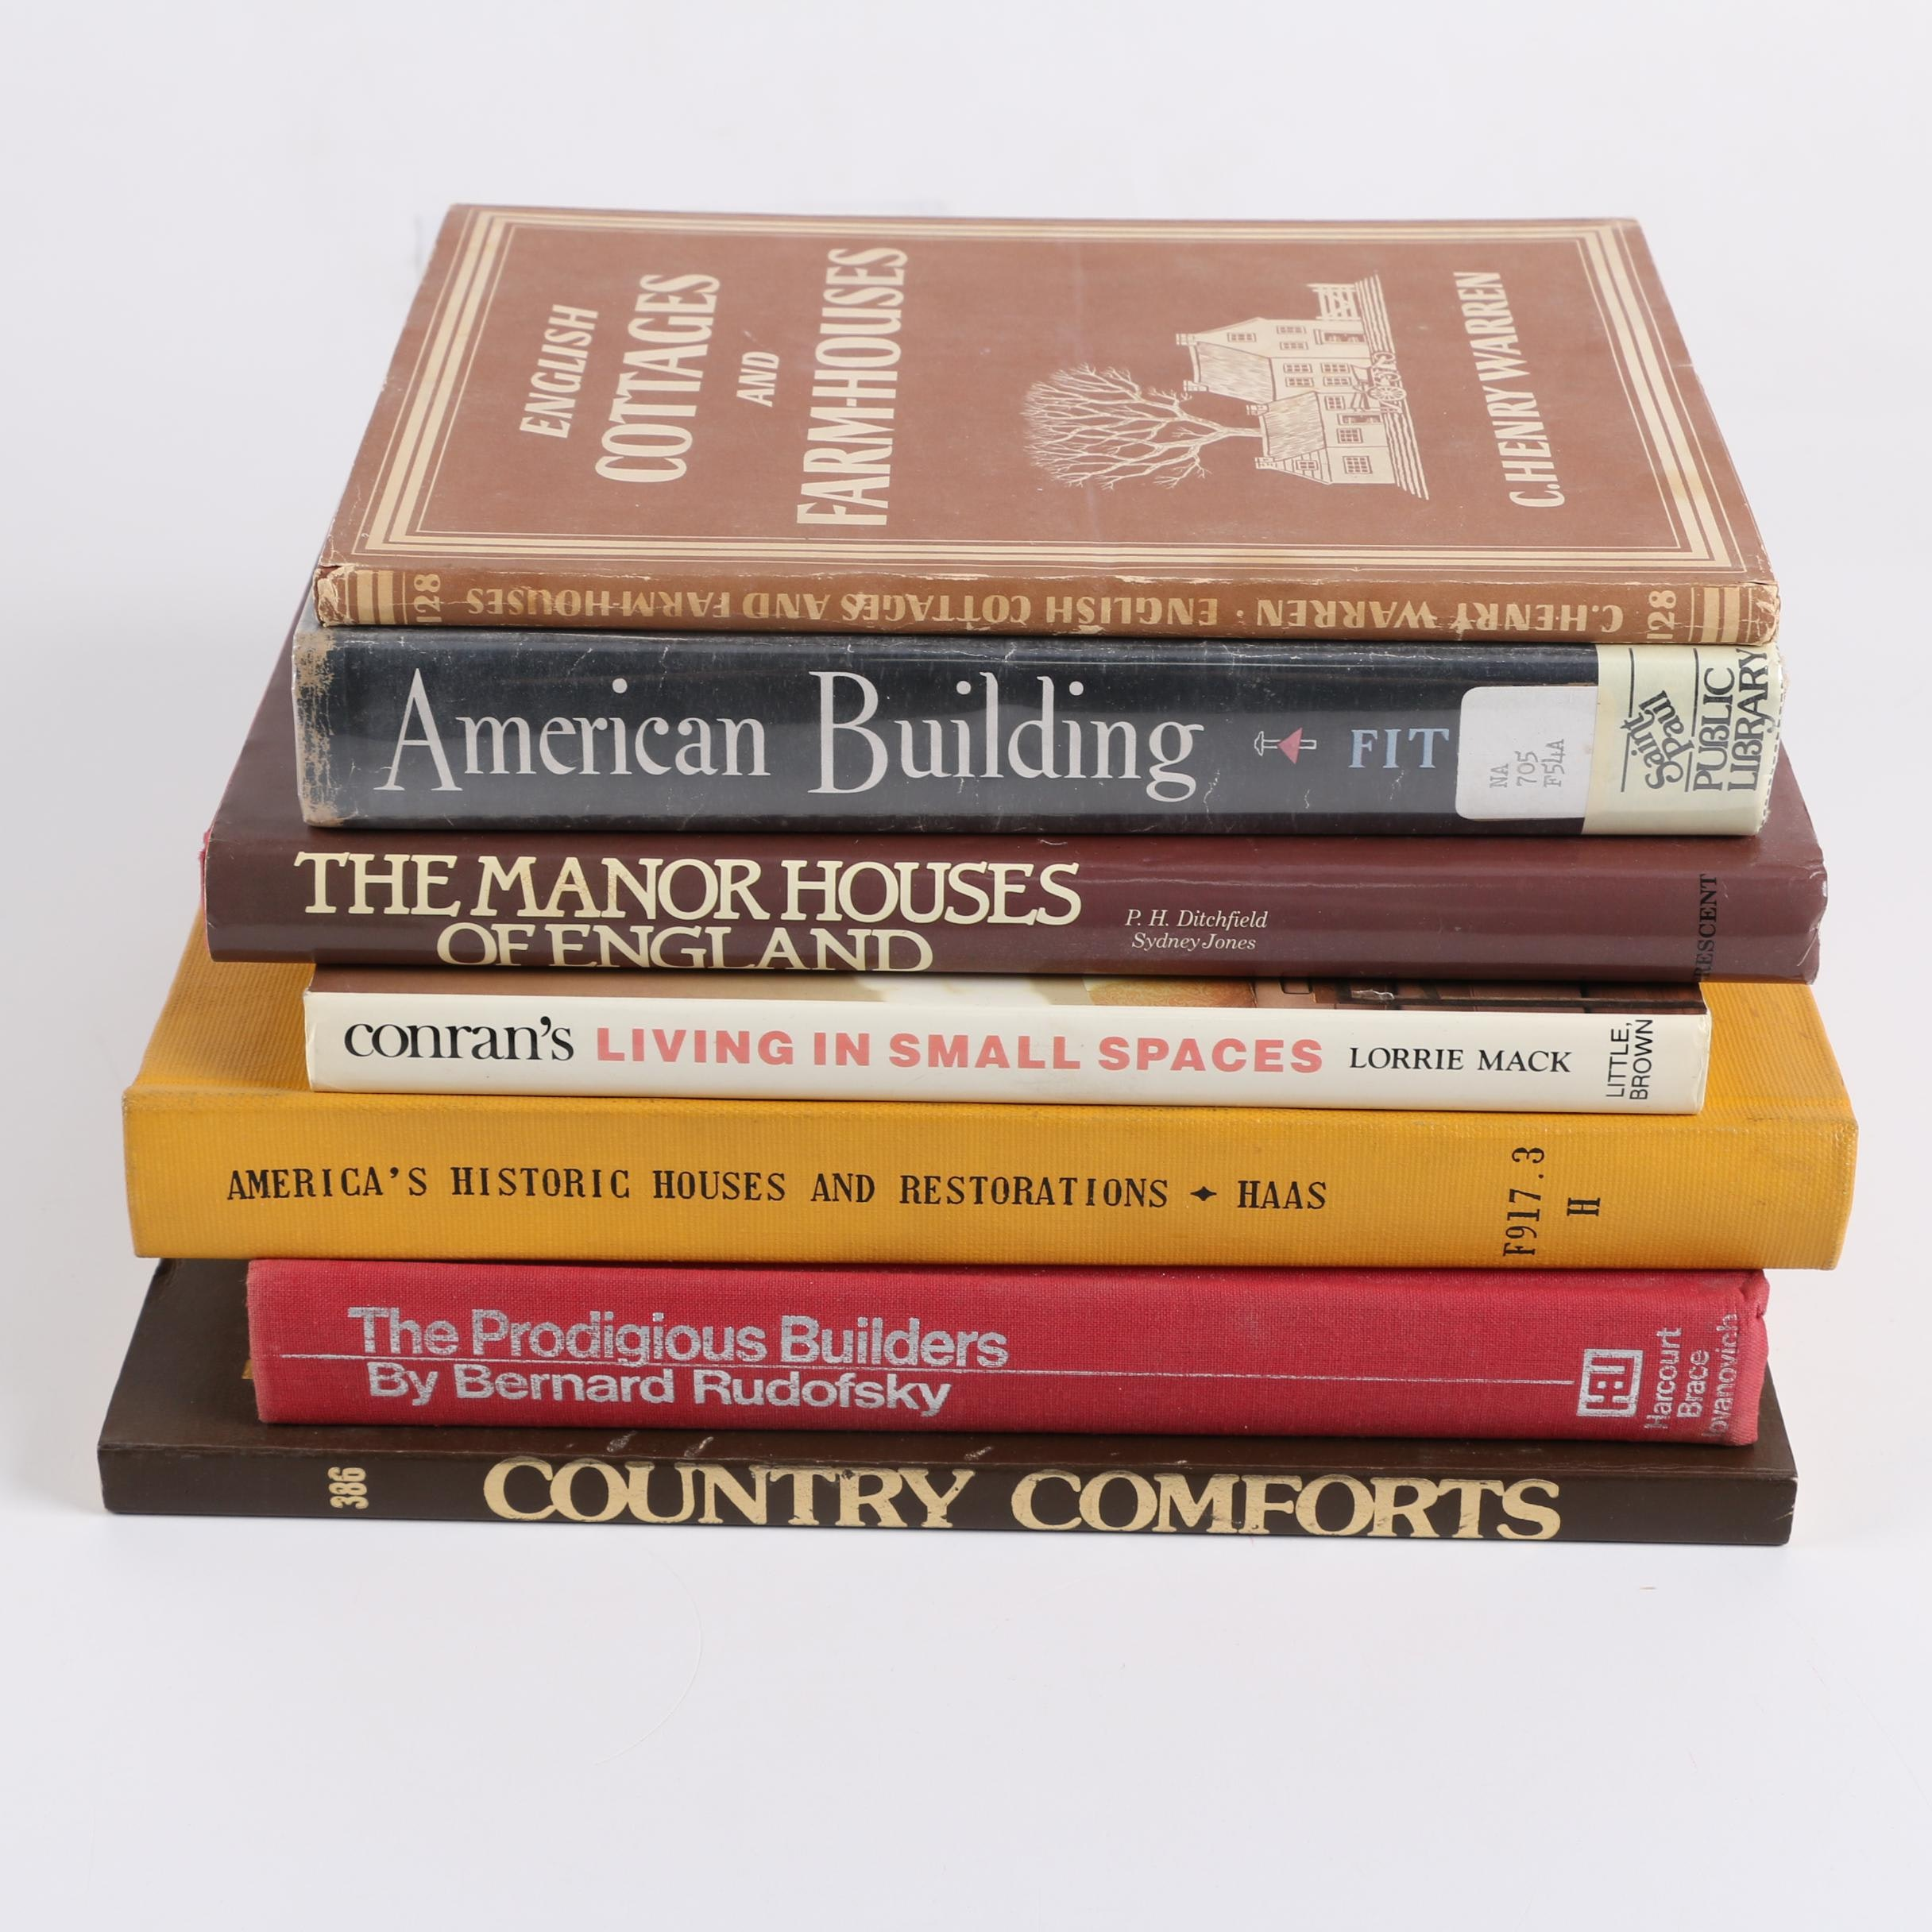 Vintage Architecture and Design Books Including